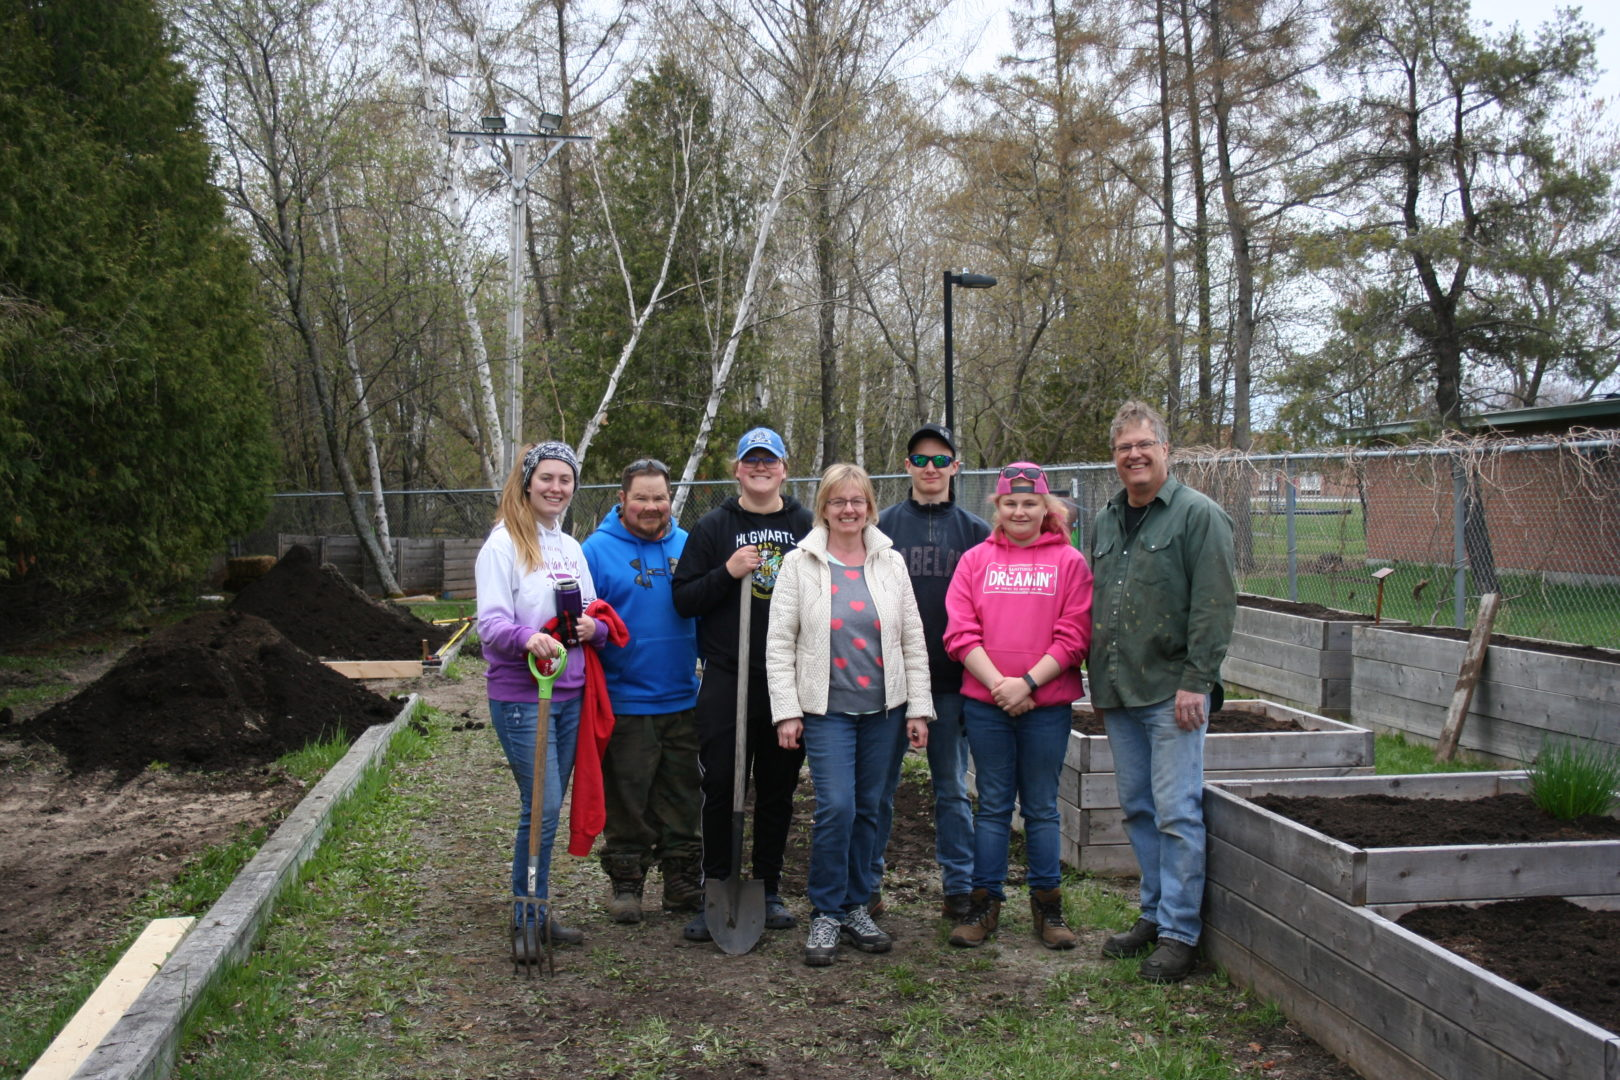 Group of people standing in front of garden boxes with fresh soil